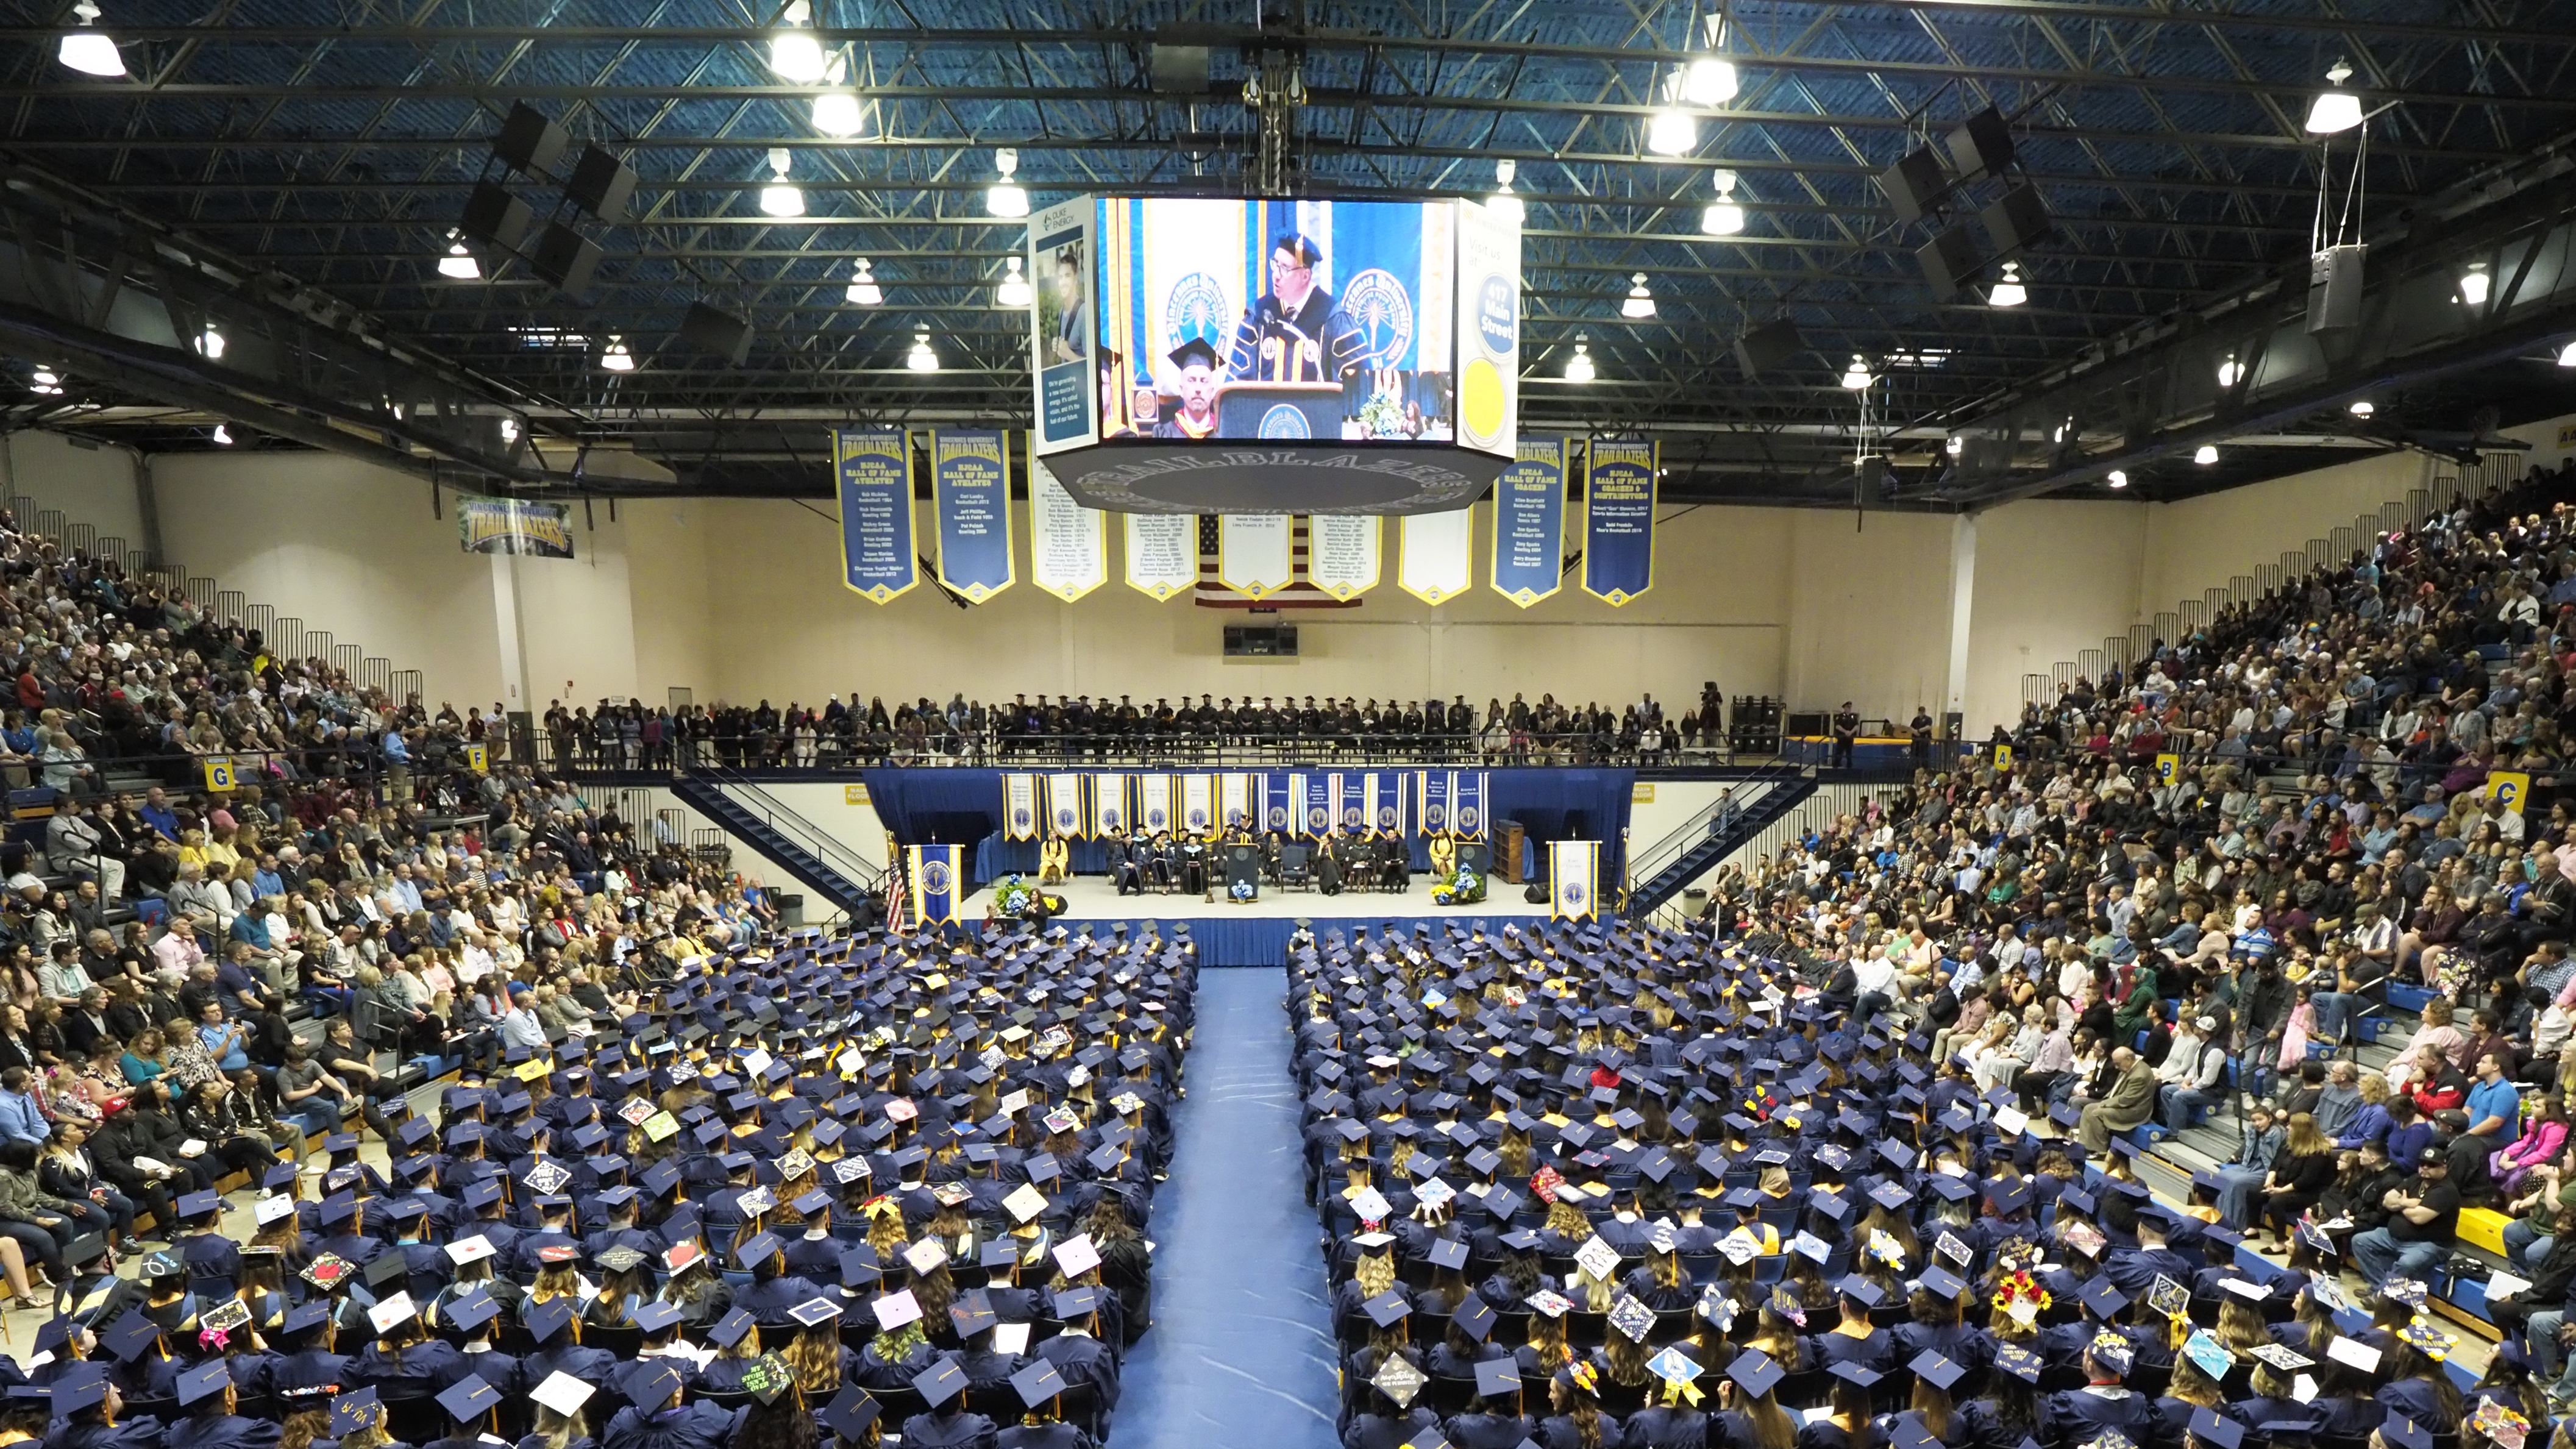 Vincennes University ranked among top colleges for associates degrees